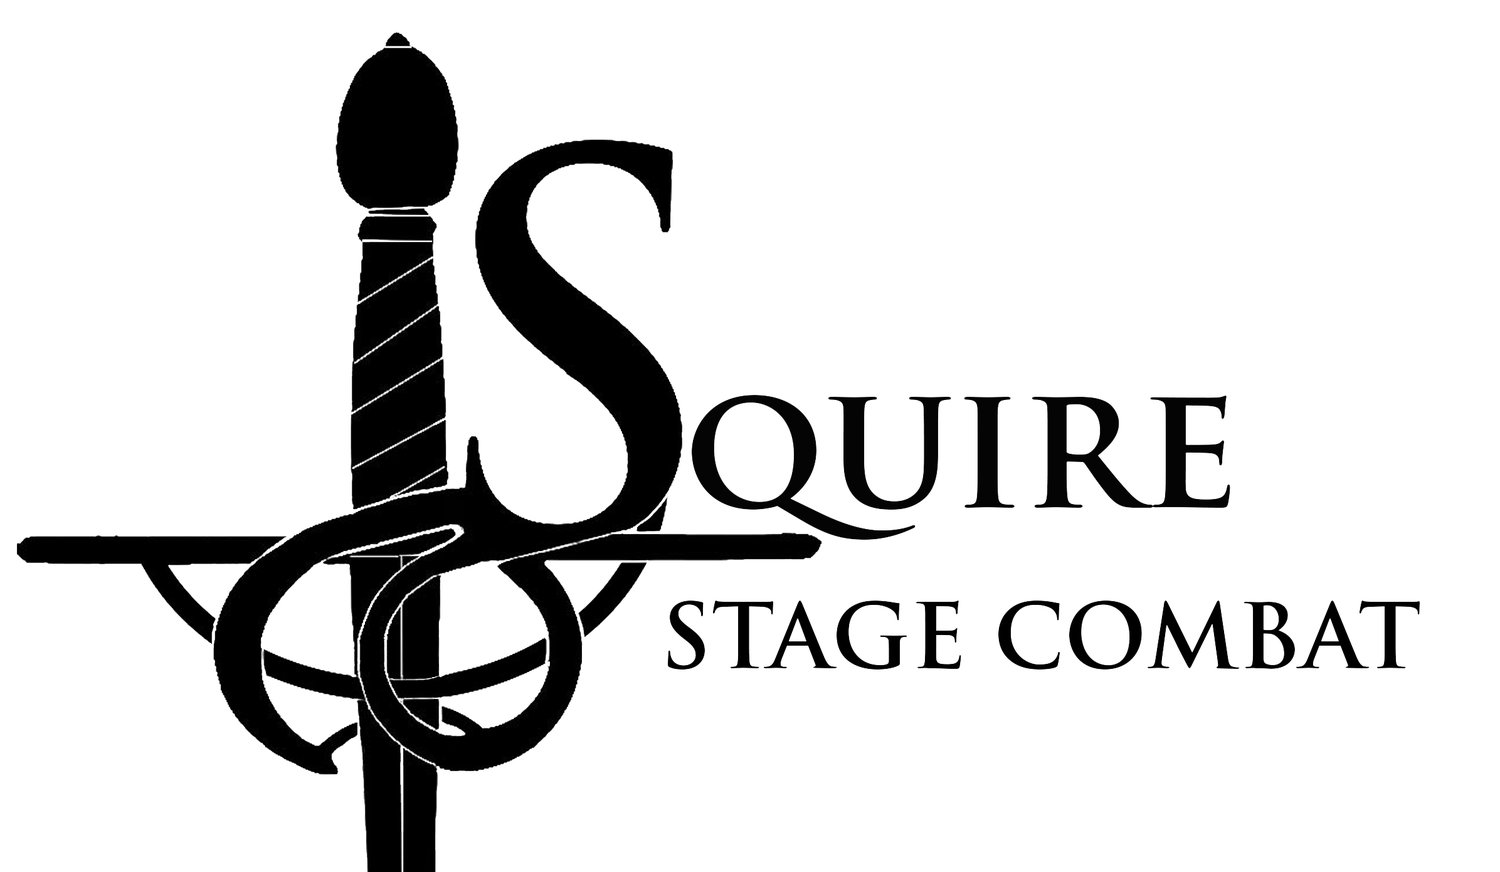 Squire Stage Combat